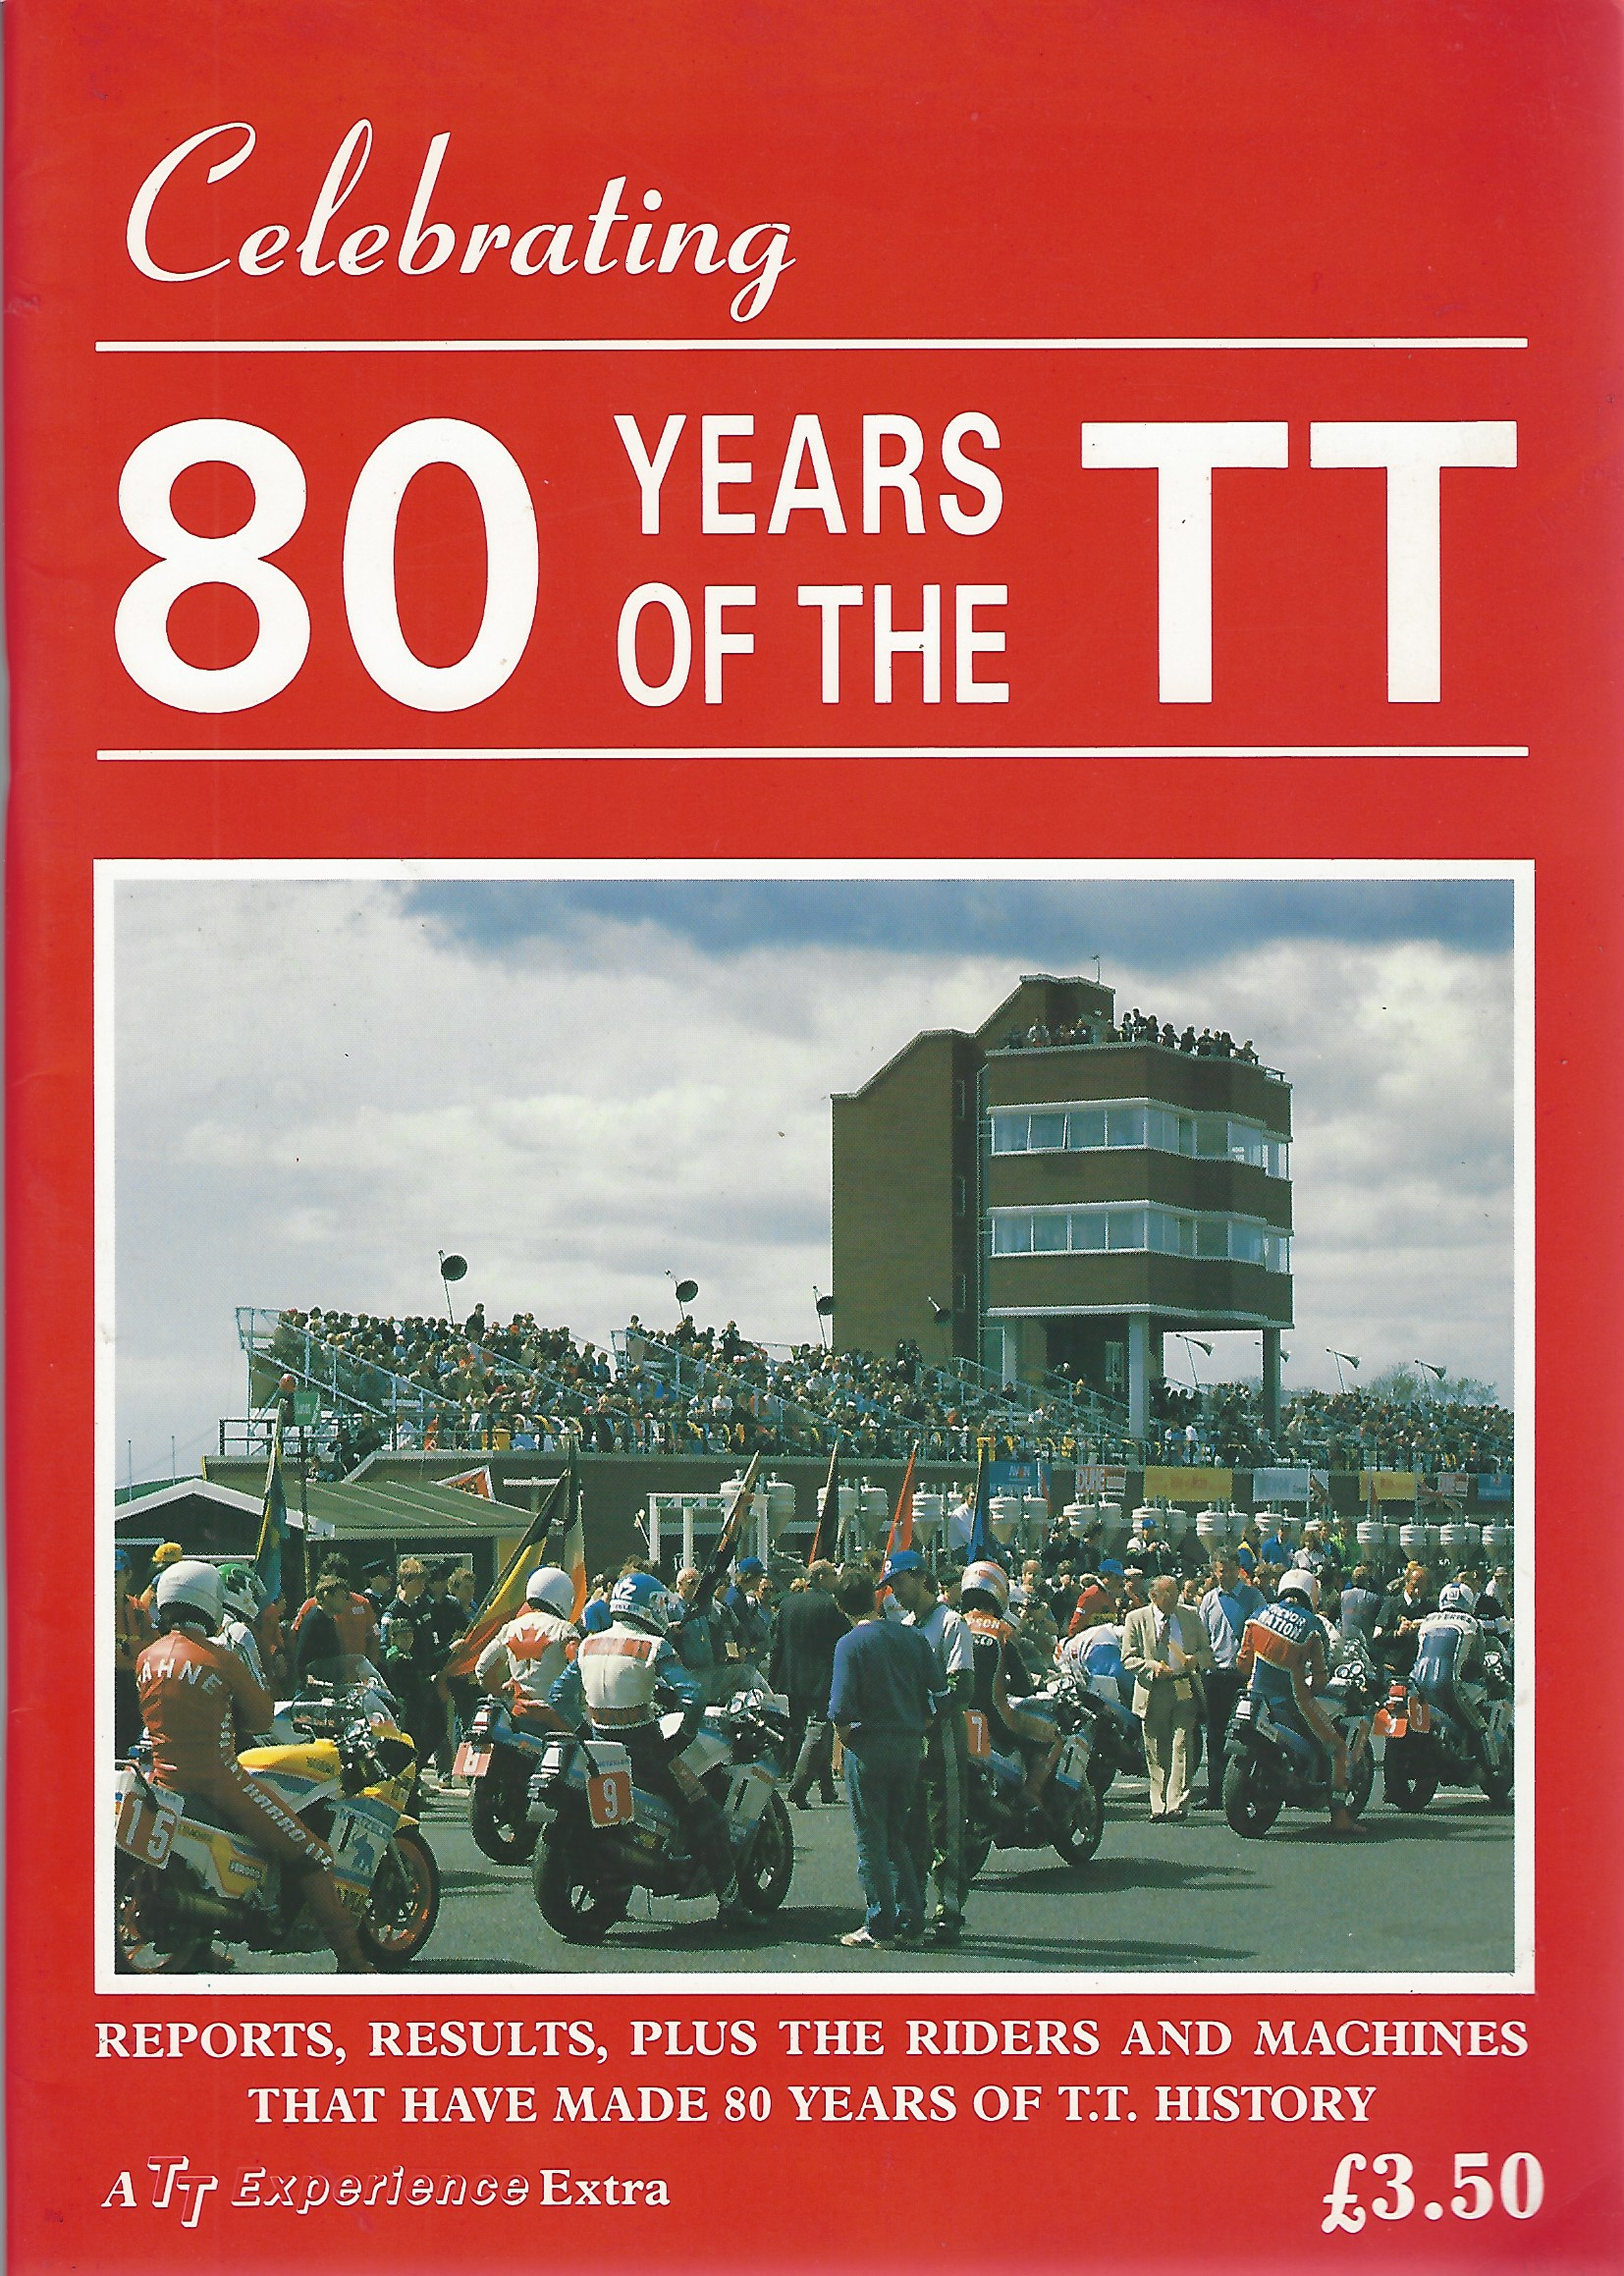 Image for Celebrating 80 Years of the TT